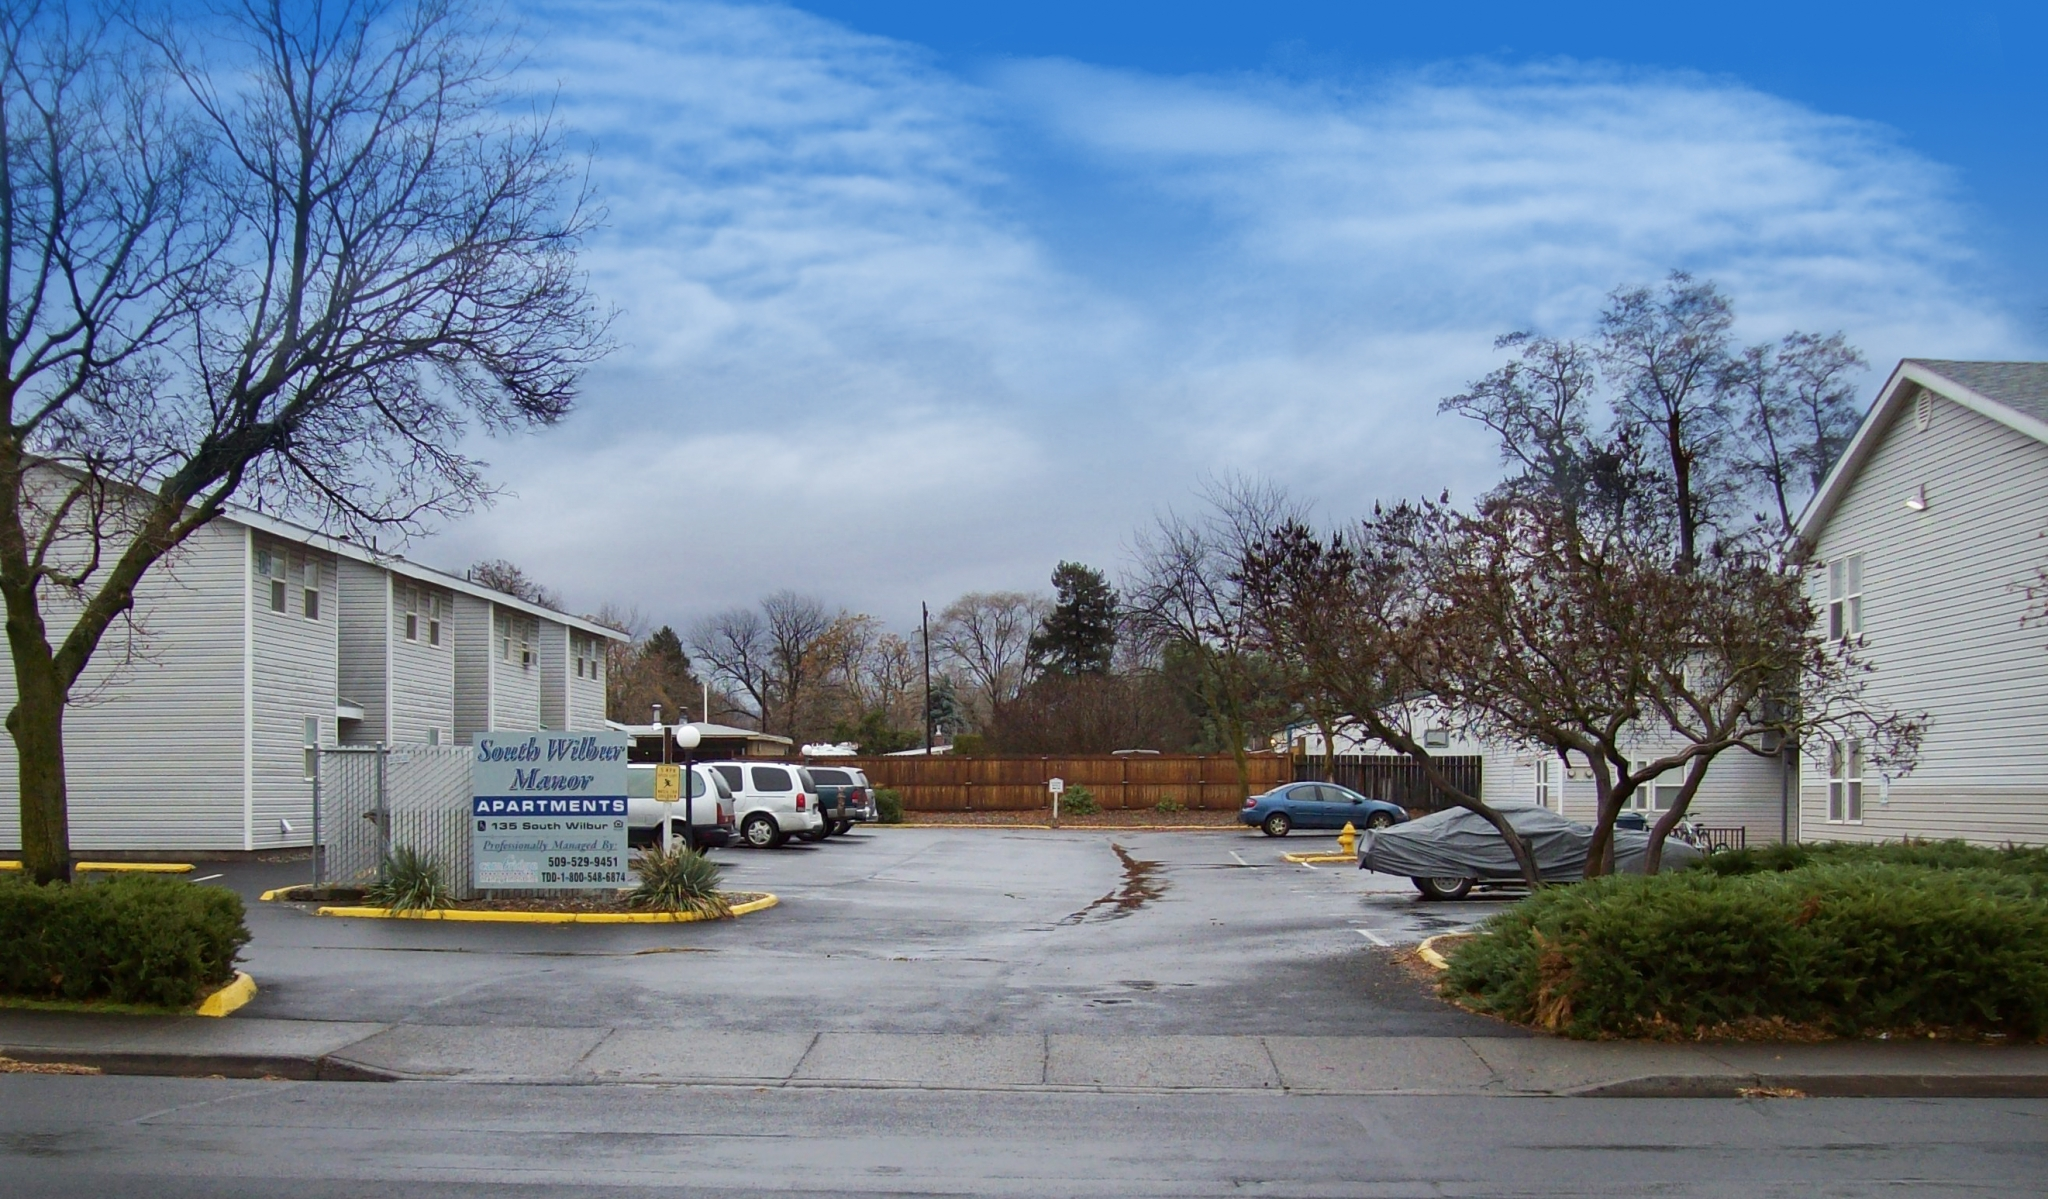 Image of Off-Street Parking for South Wilbur Manor Apartments